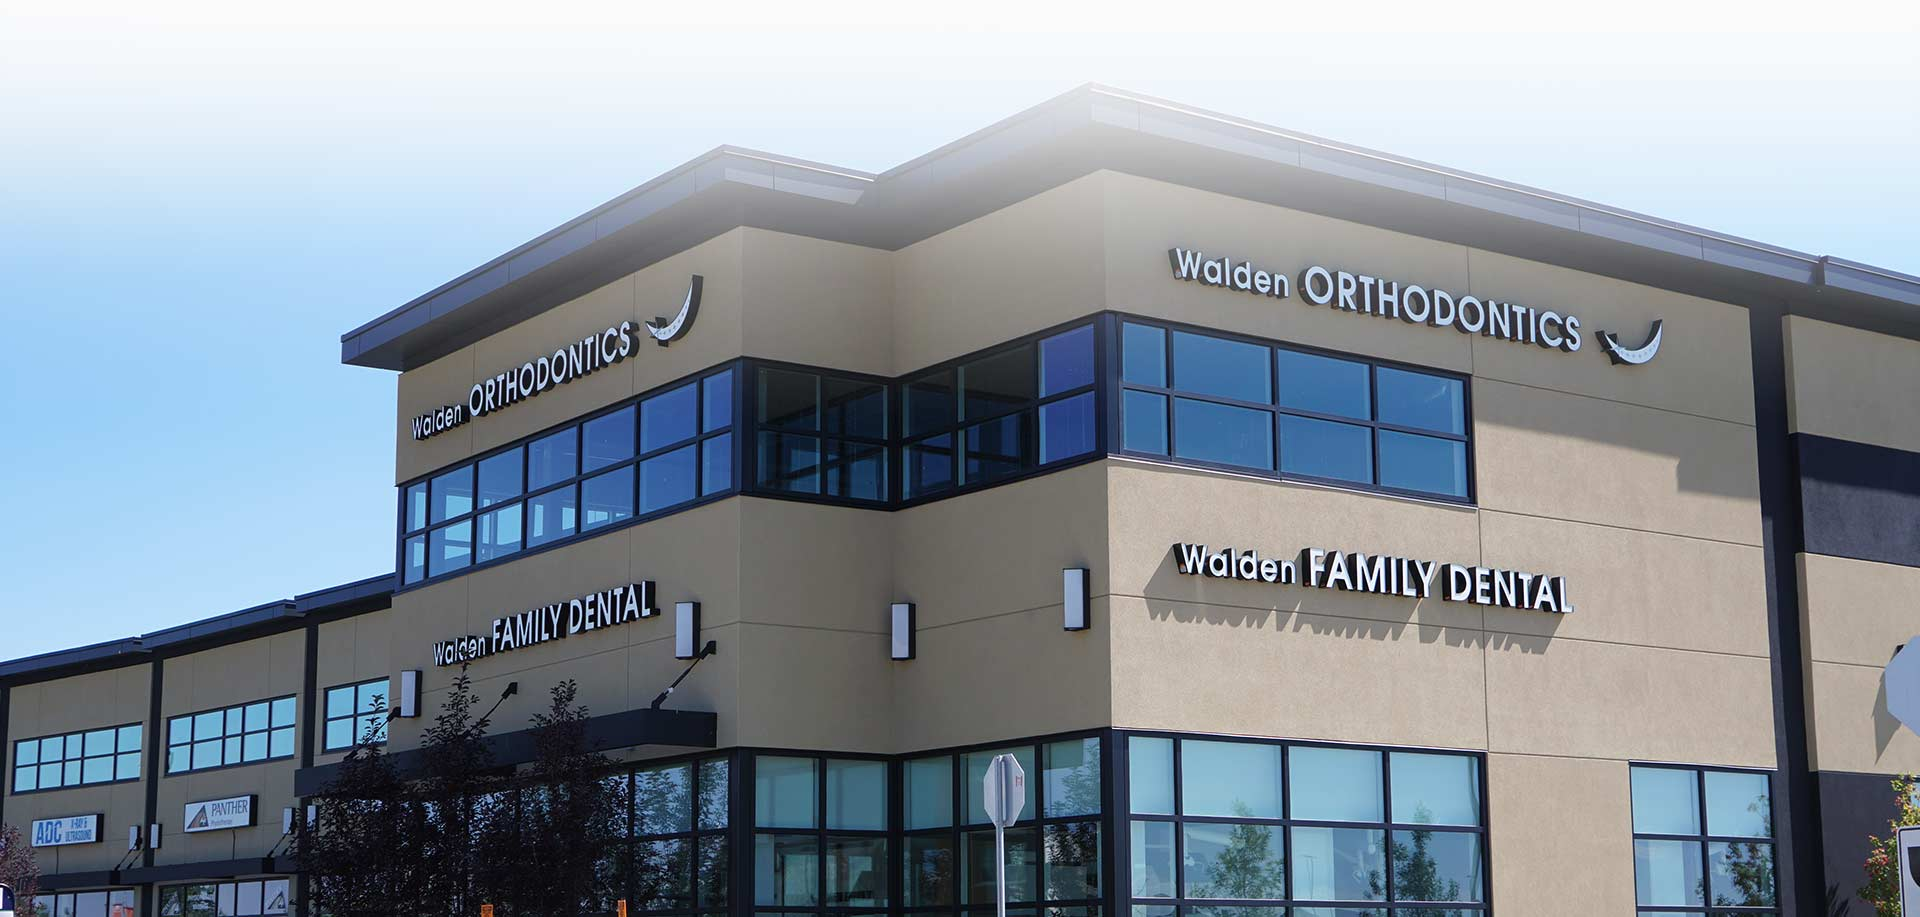 Walden Family Dental Exterior | South Calgary Family Dentist